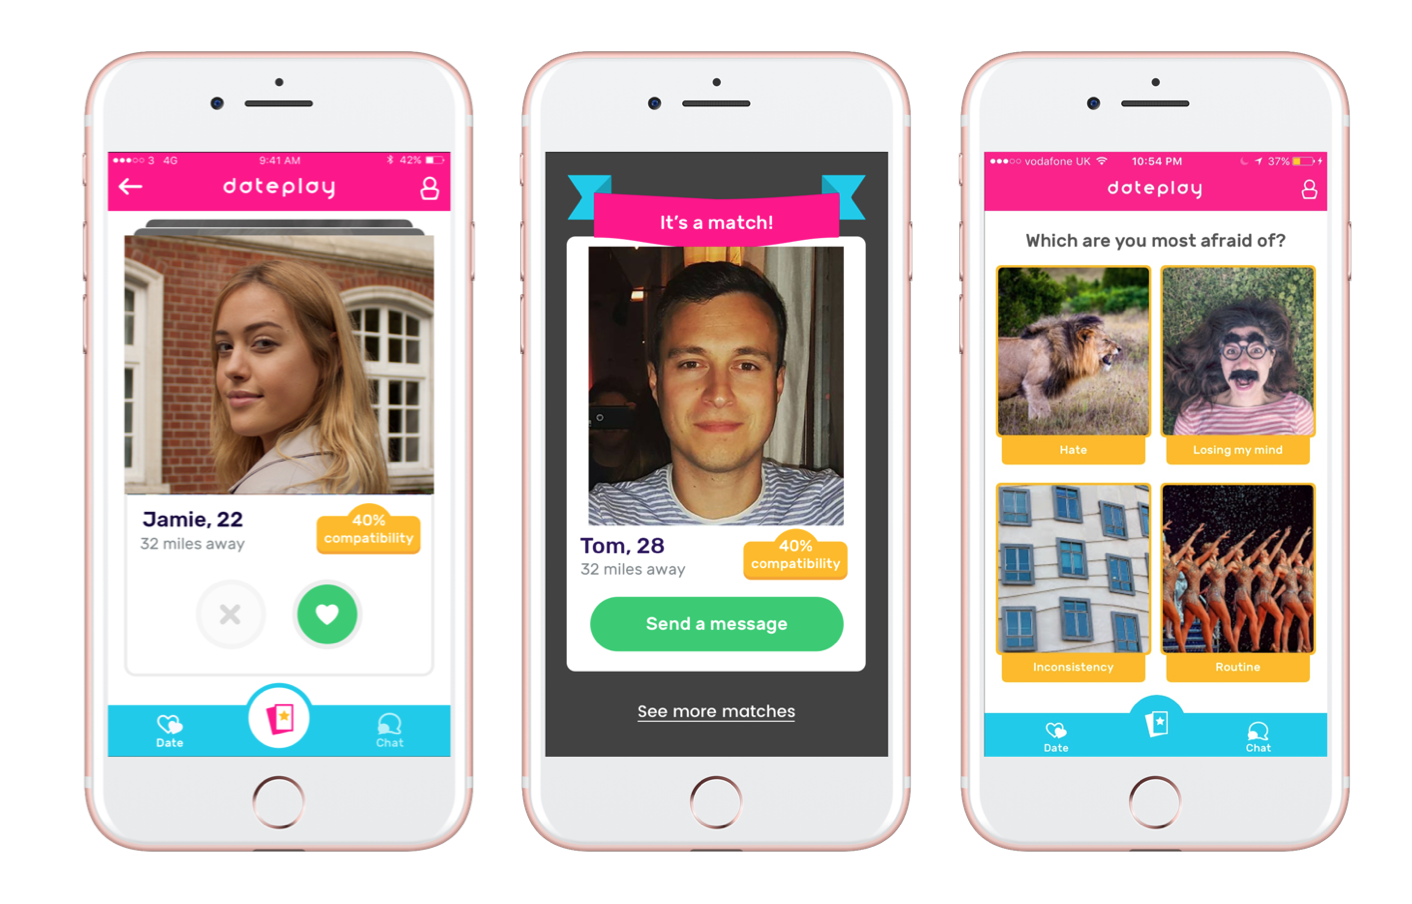 Apprentice dating app - Kanal Avrupa